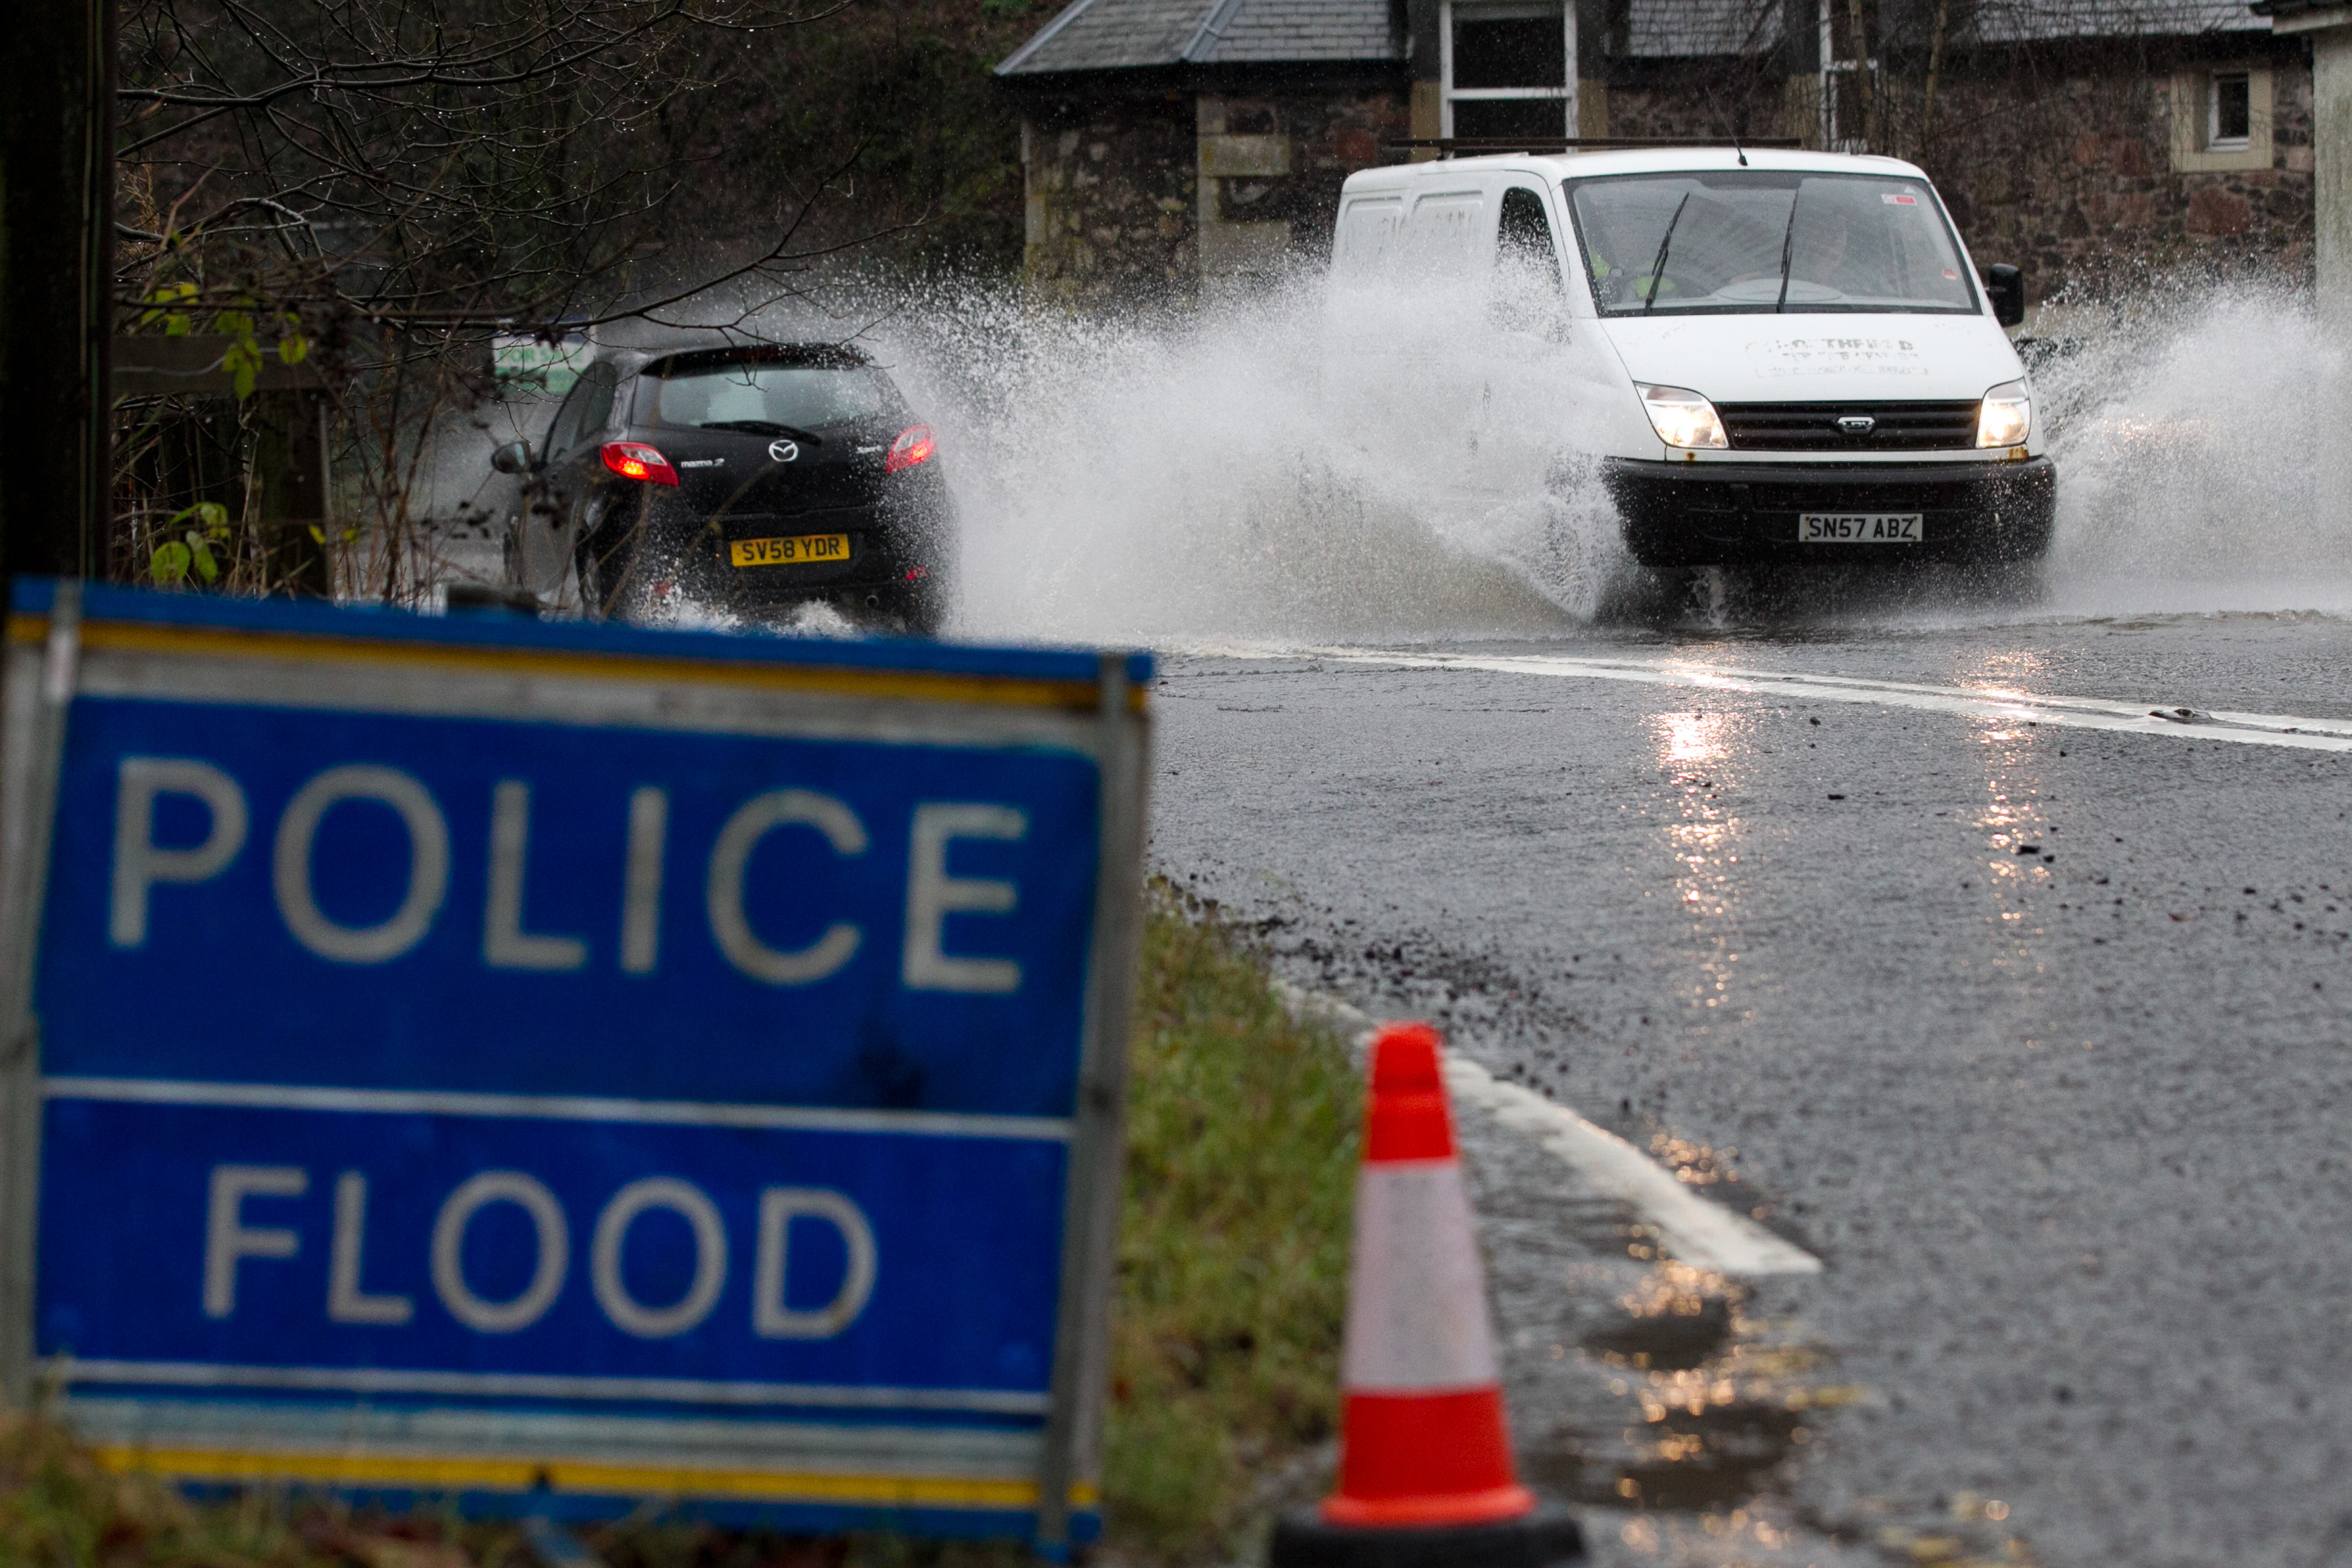 Baby, mother and OAP rescued from cars stuck in Dumfries and Galloway flood water - Sunday Post